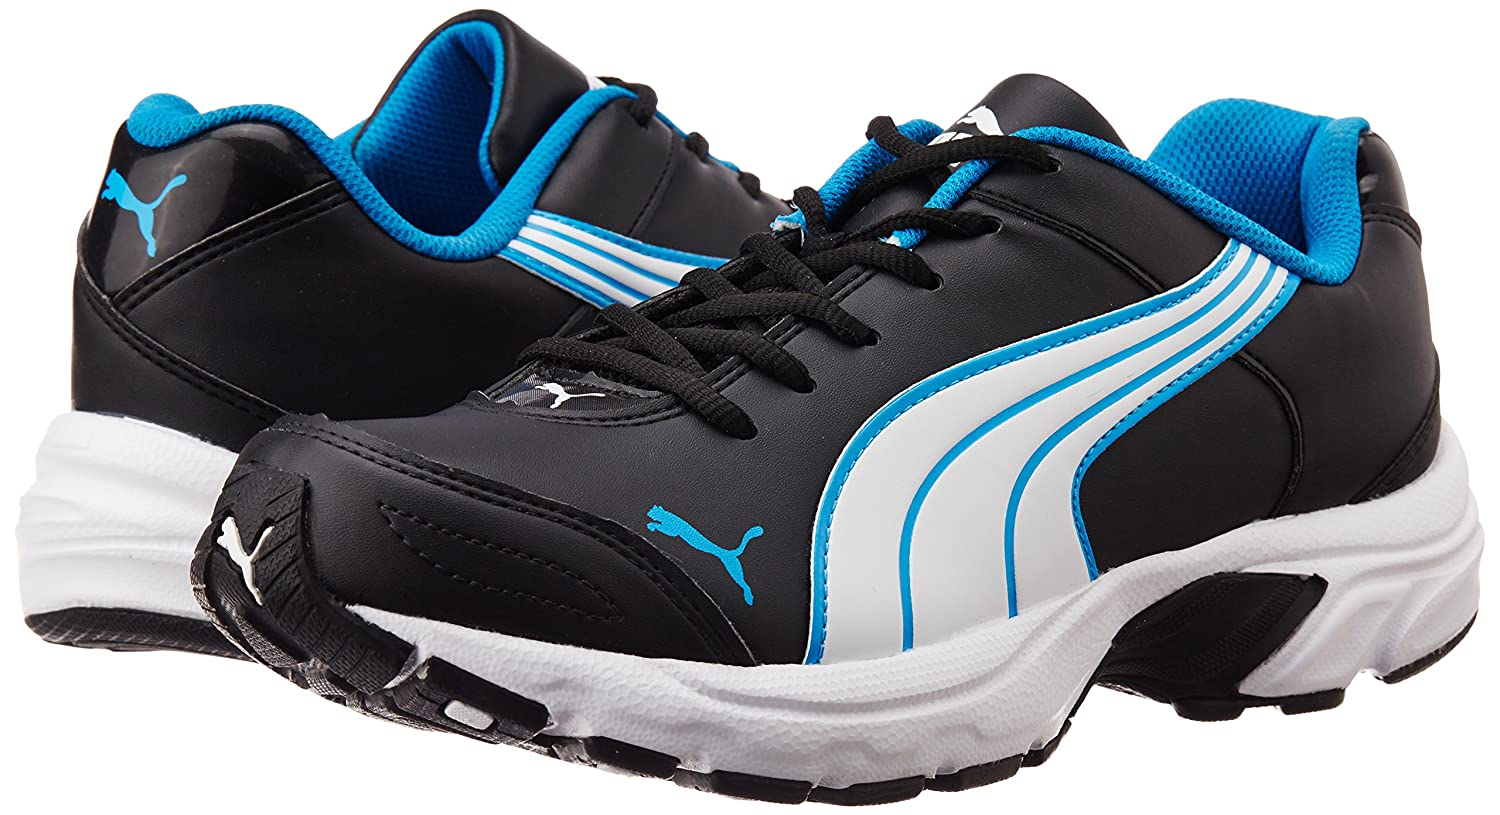 Deals on Puma Men's Axis IV XT DP Mesh Running Shoes